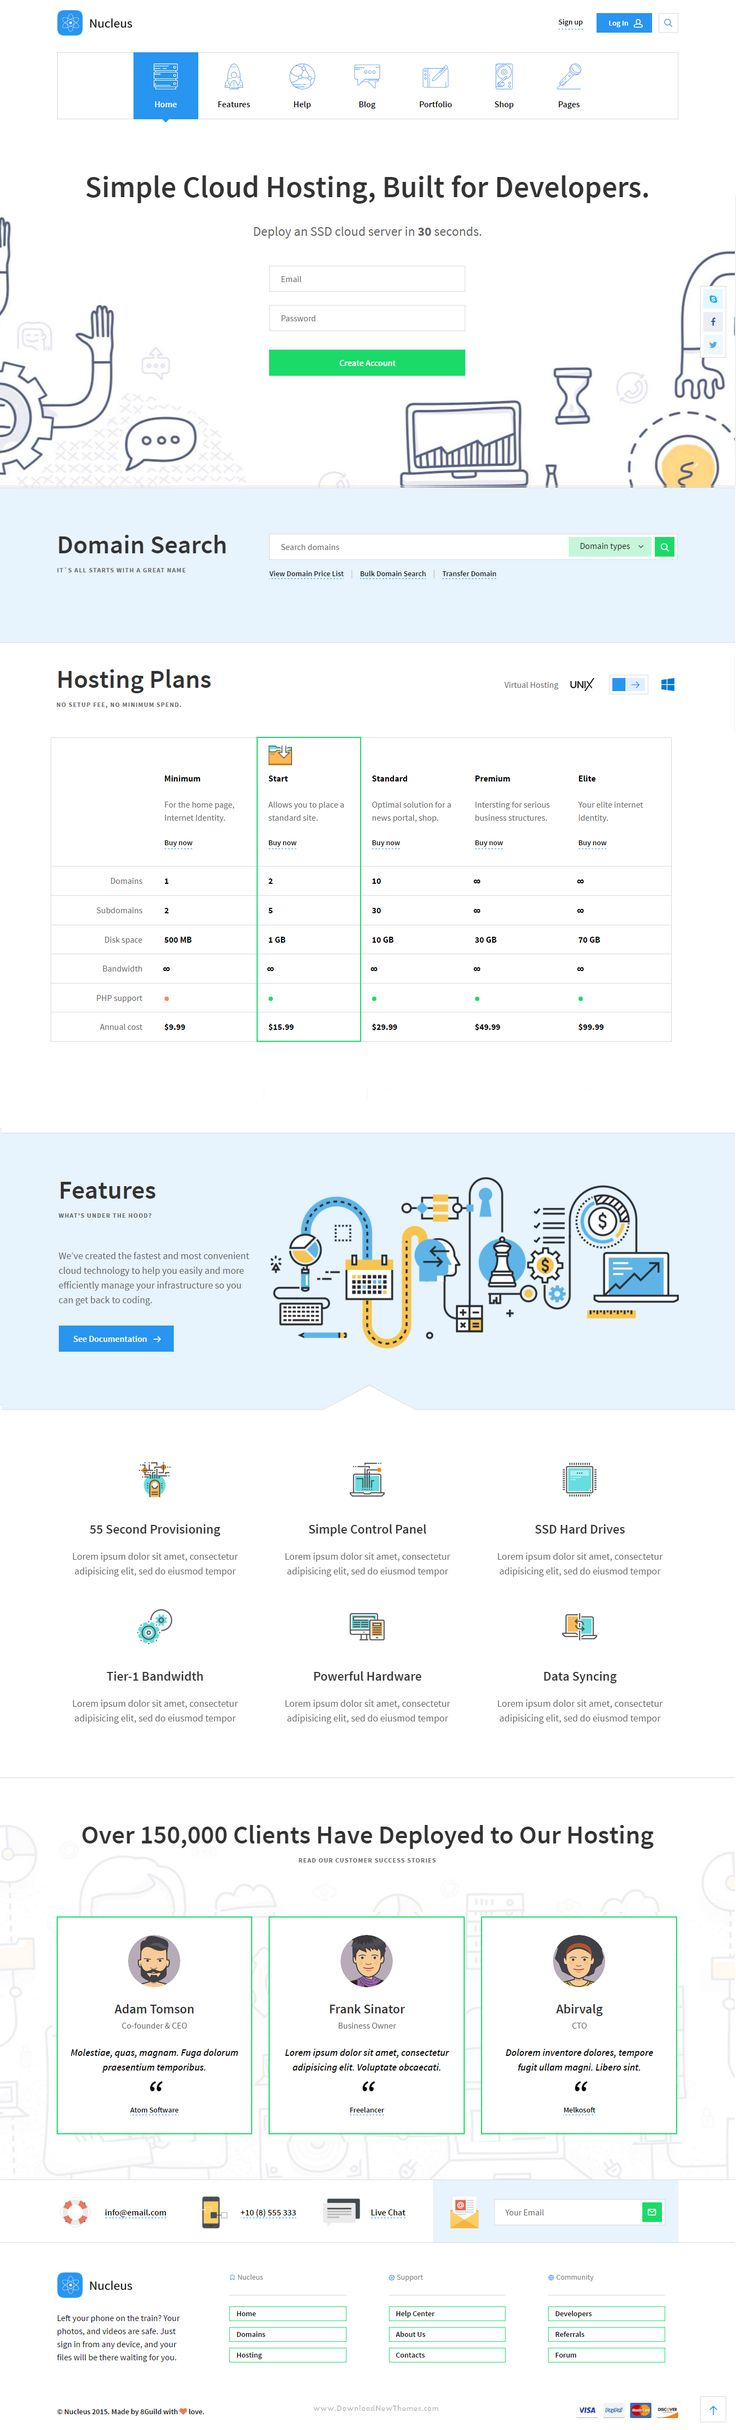 Nucleus - Multipurpose Technology Bootstrap HTML Template. It has 6 Unique and Creative Landing Pages Template #web #hosting #marketing #website https://www.a2hosting.com/dedicated-server-hosting/managed?aid=jrstudioweb&bid=753d7a6e